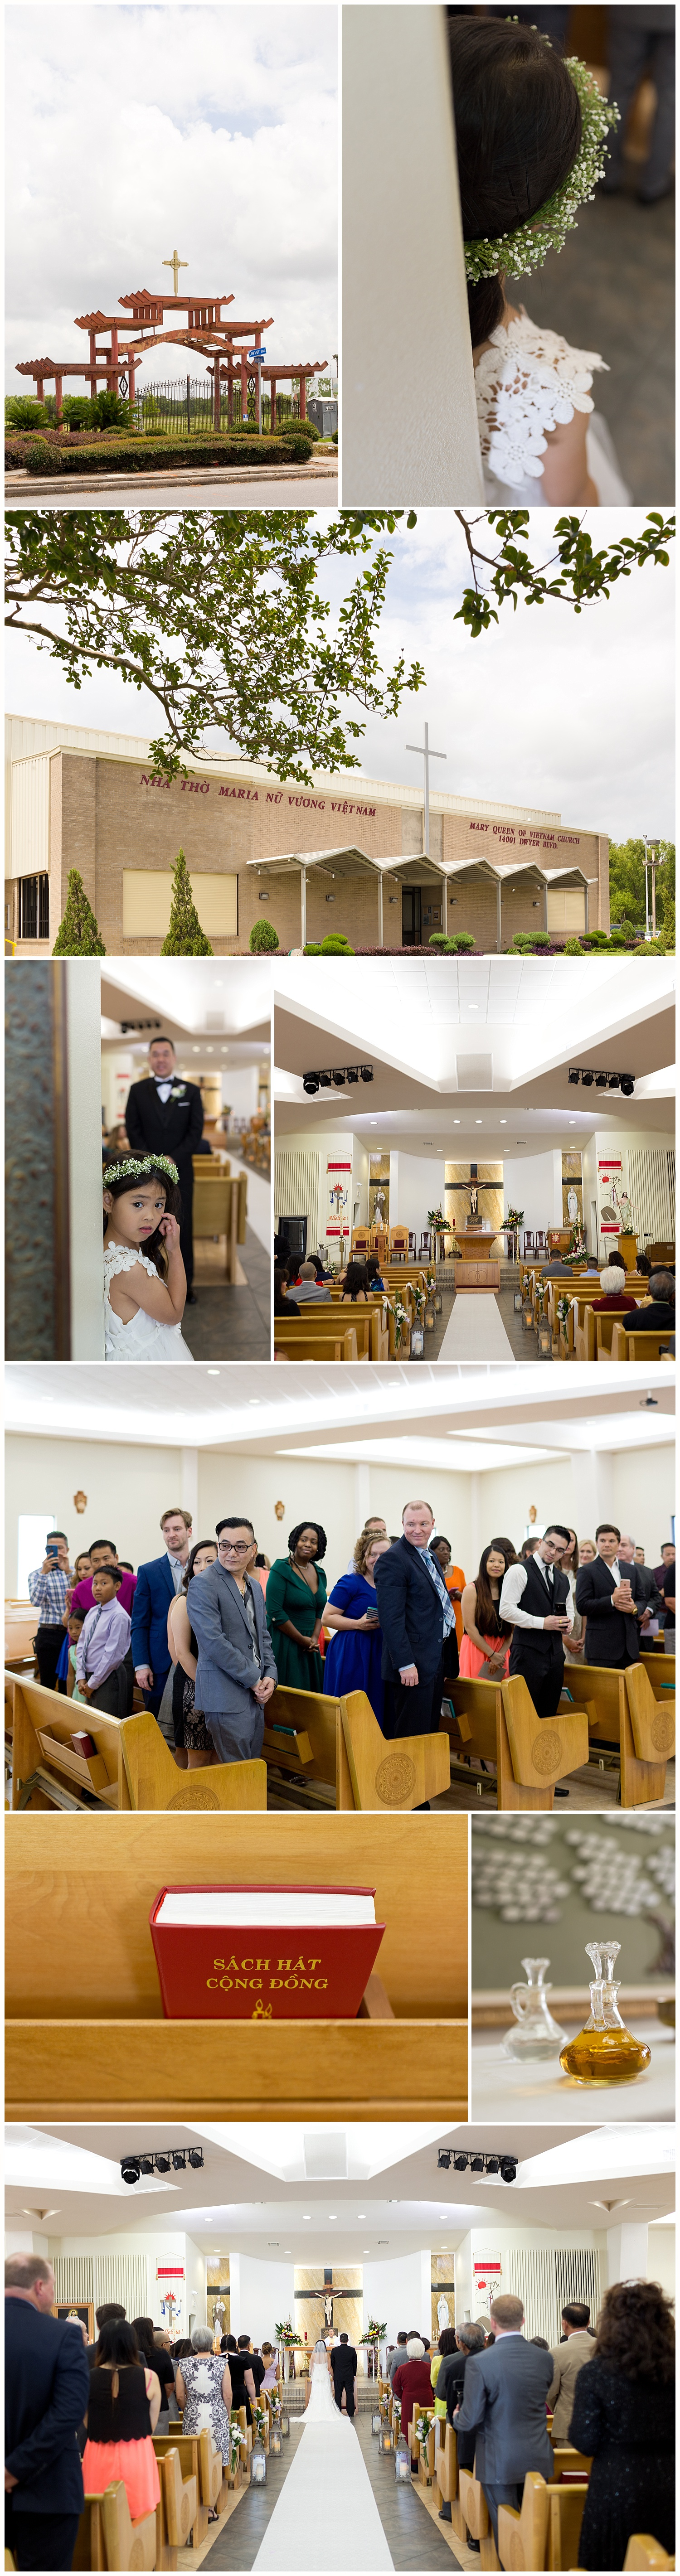 wedding at Mary Queen of Vietnam Church in New Orleans